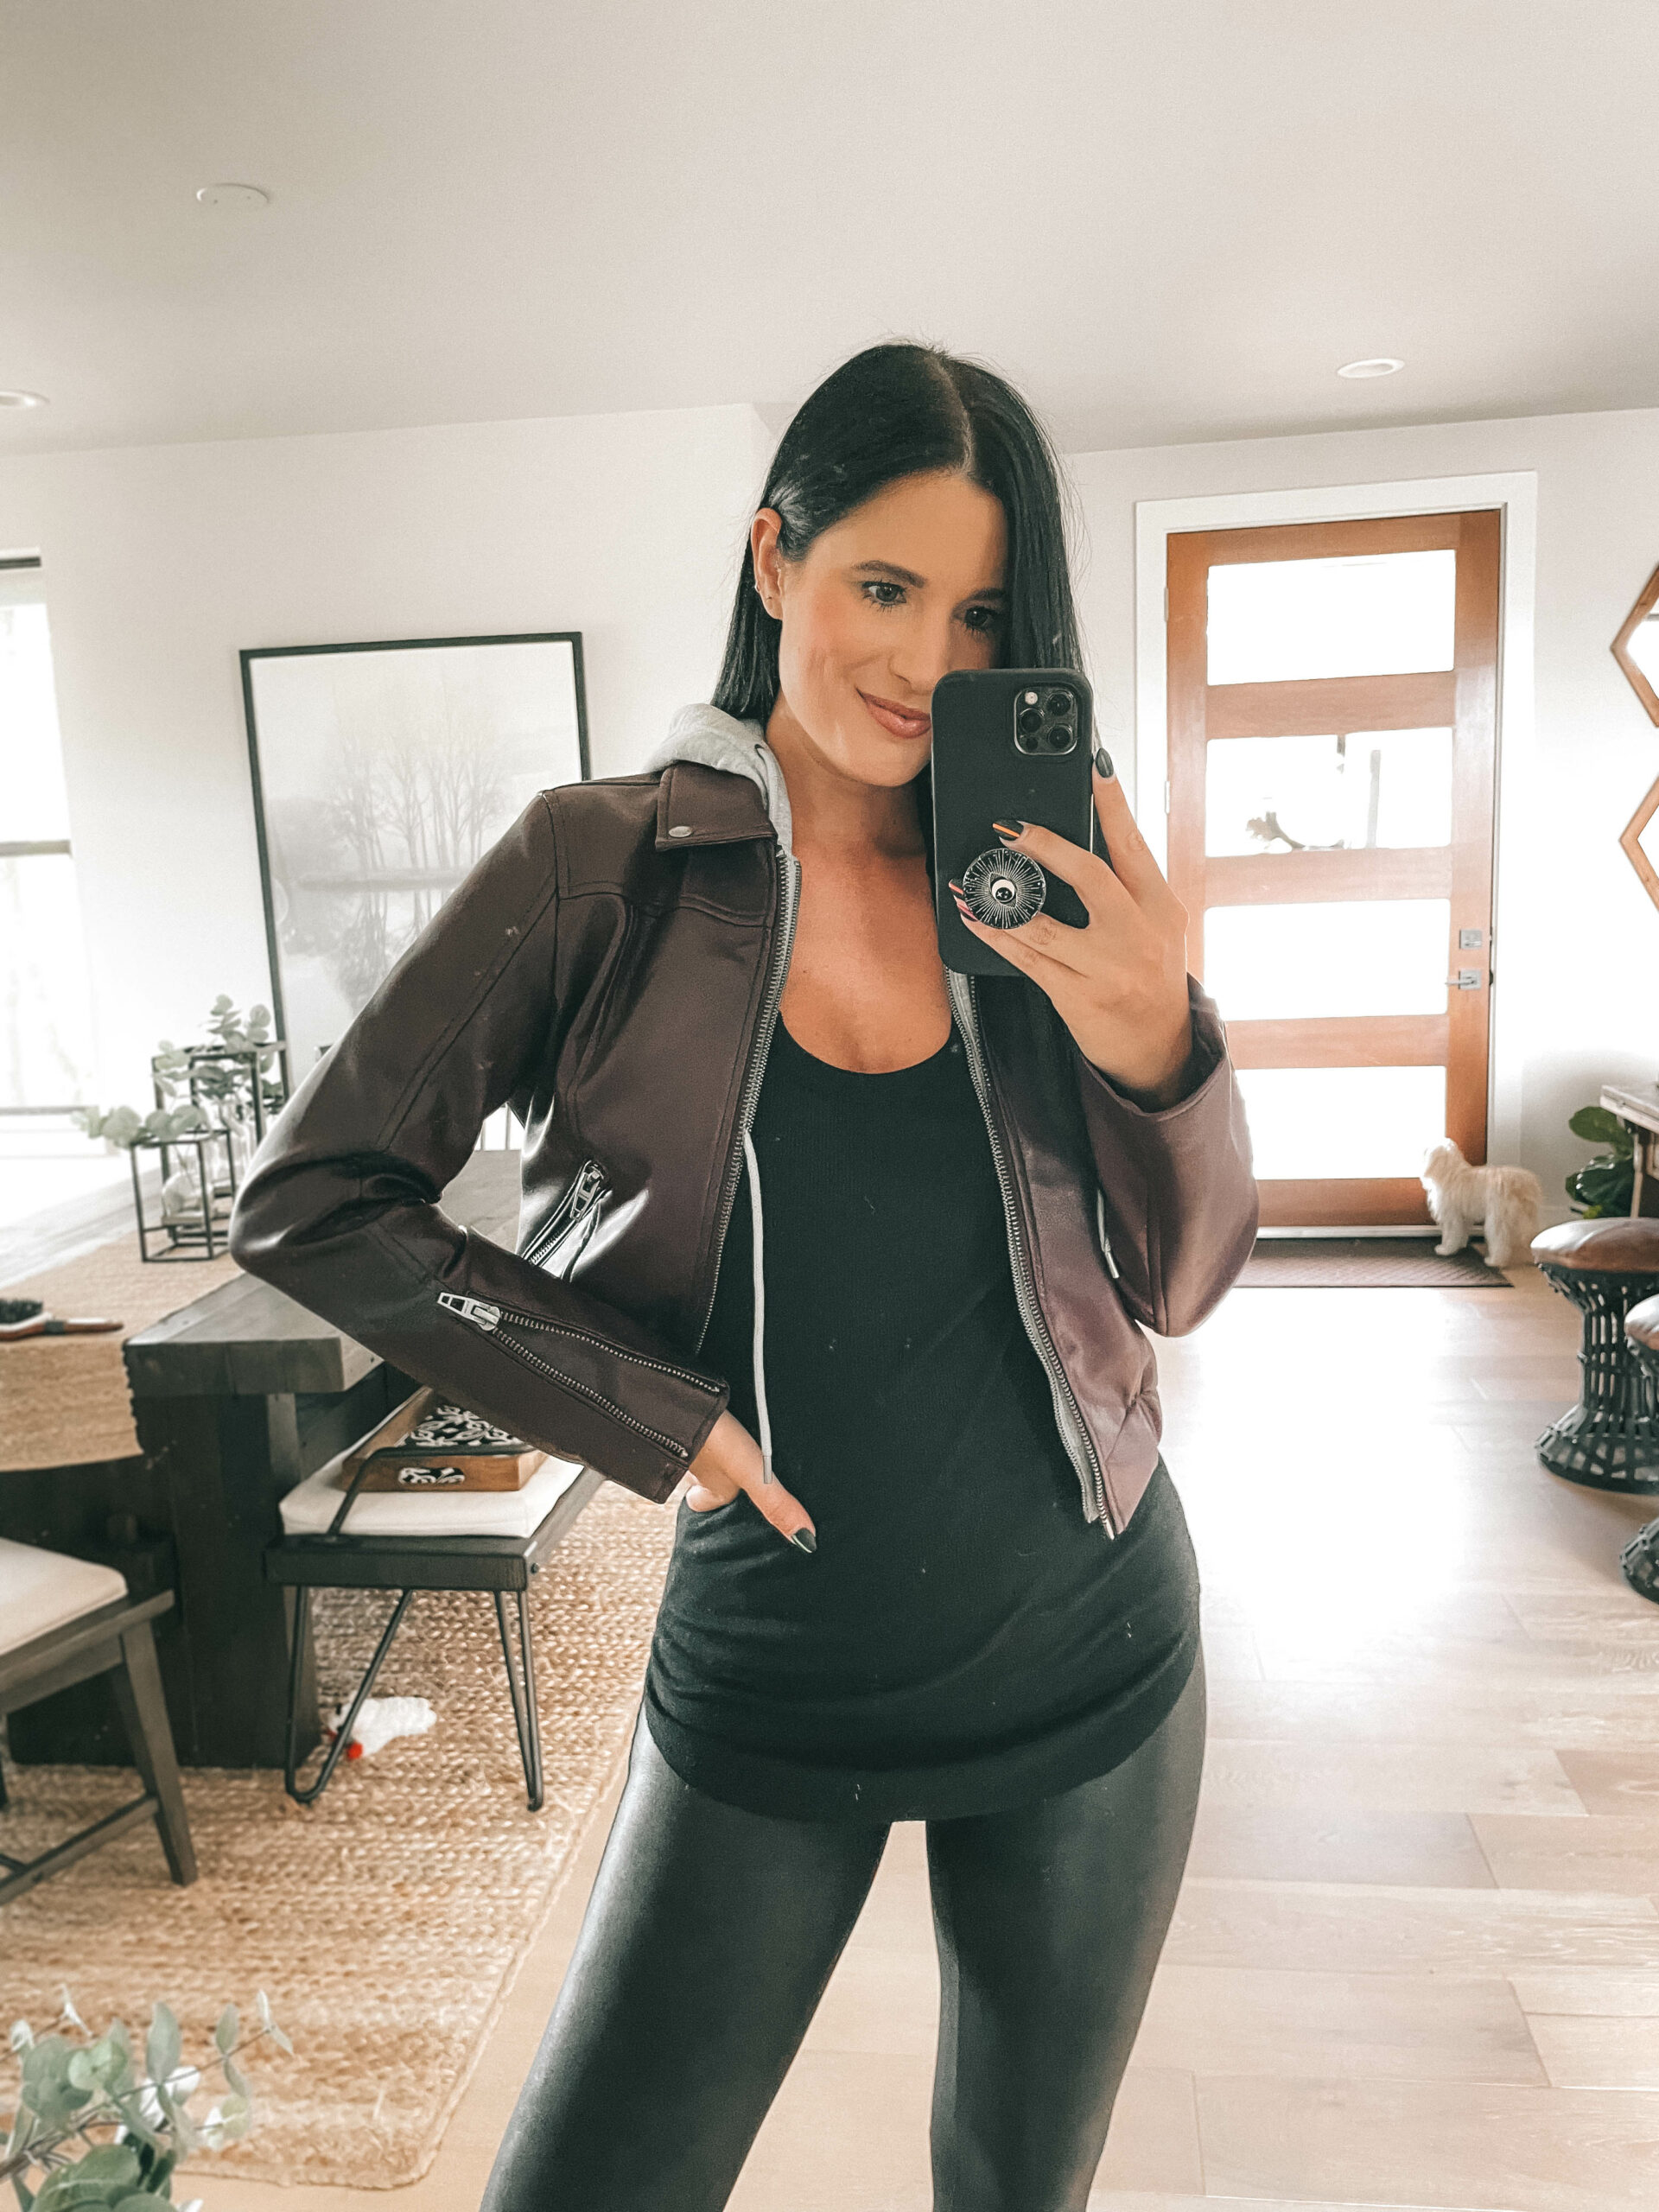 Nordstrom Anniversary Sale by popular Austin fashion blog, Dressed to Kill: image of a woman wearing a black faux leather hooded jacket, black top and black faux leather leggings.